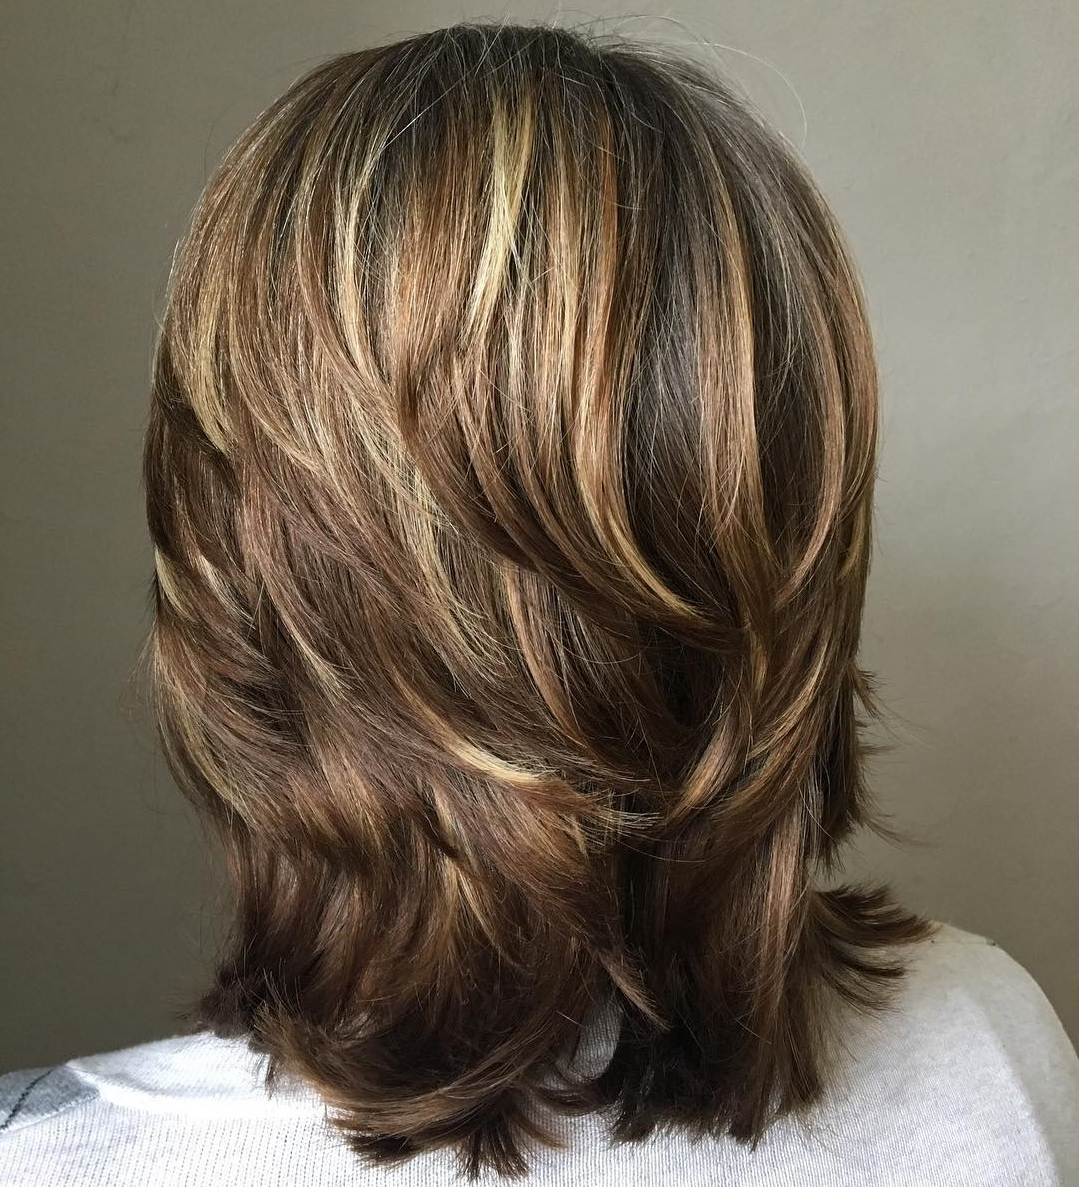 Fashionable Mid Back Brown U Shaped Haircuts With Swoopy Layers With 60 Most Universal Modern Shag Haircut Solutions (Gallery 4 of 20)